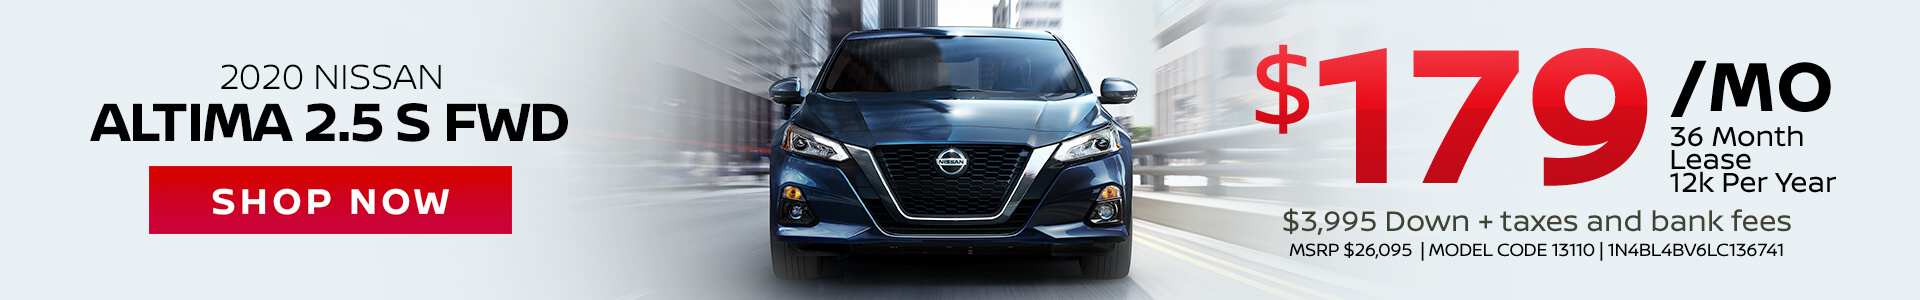 Nissan Altima $179 Lease